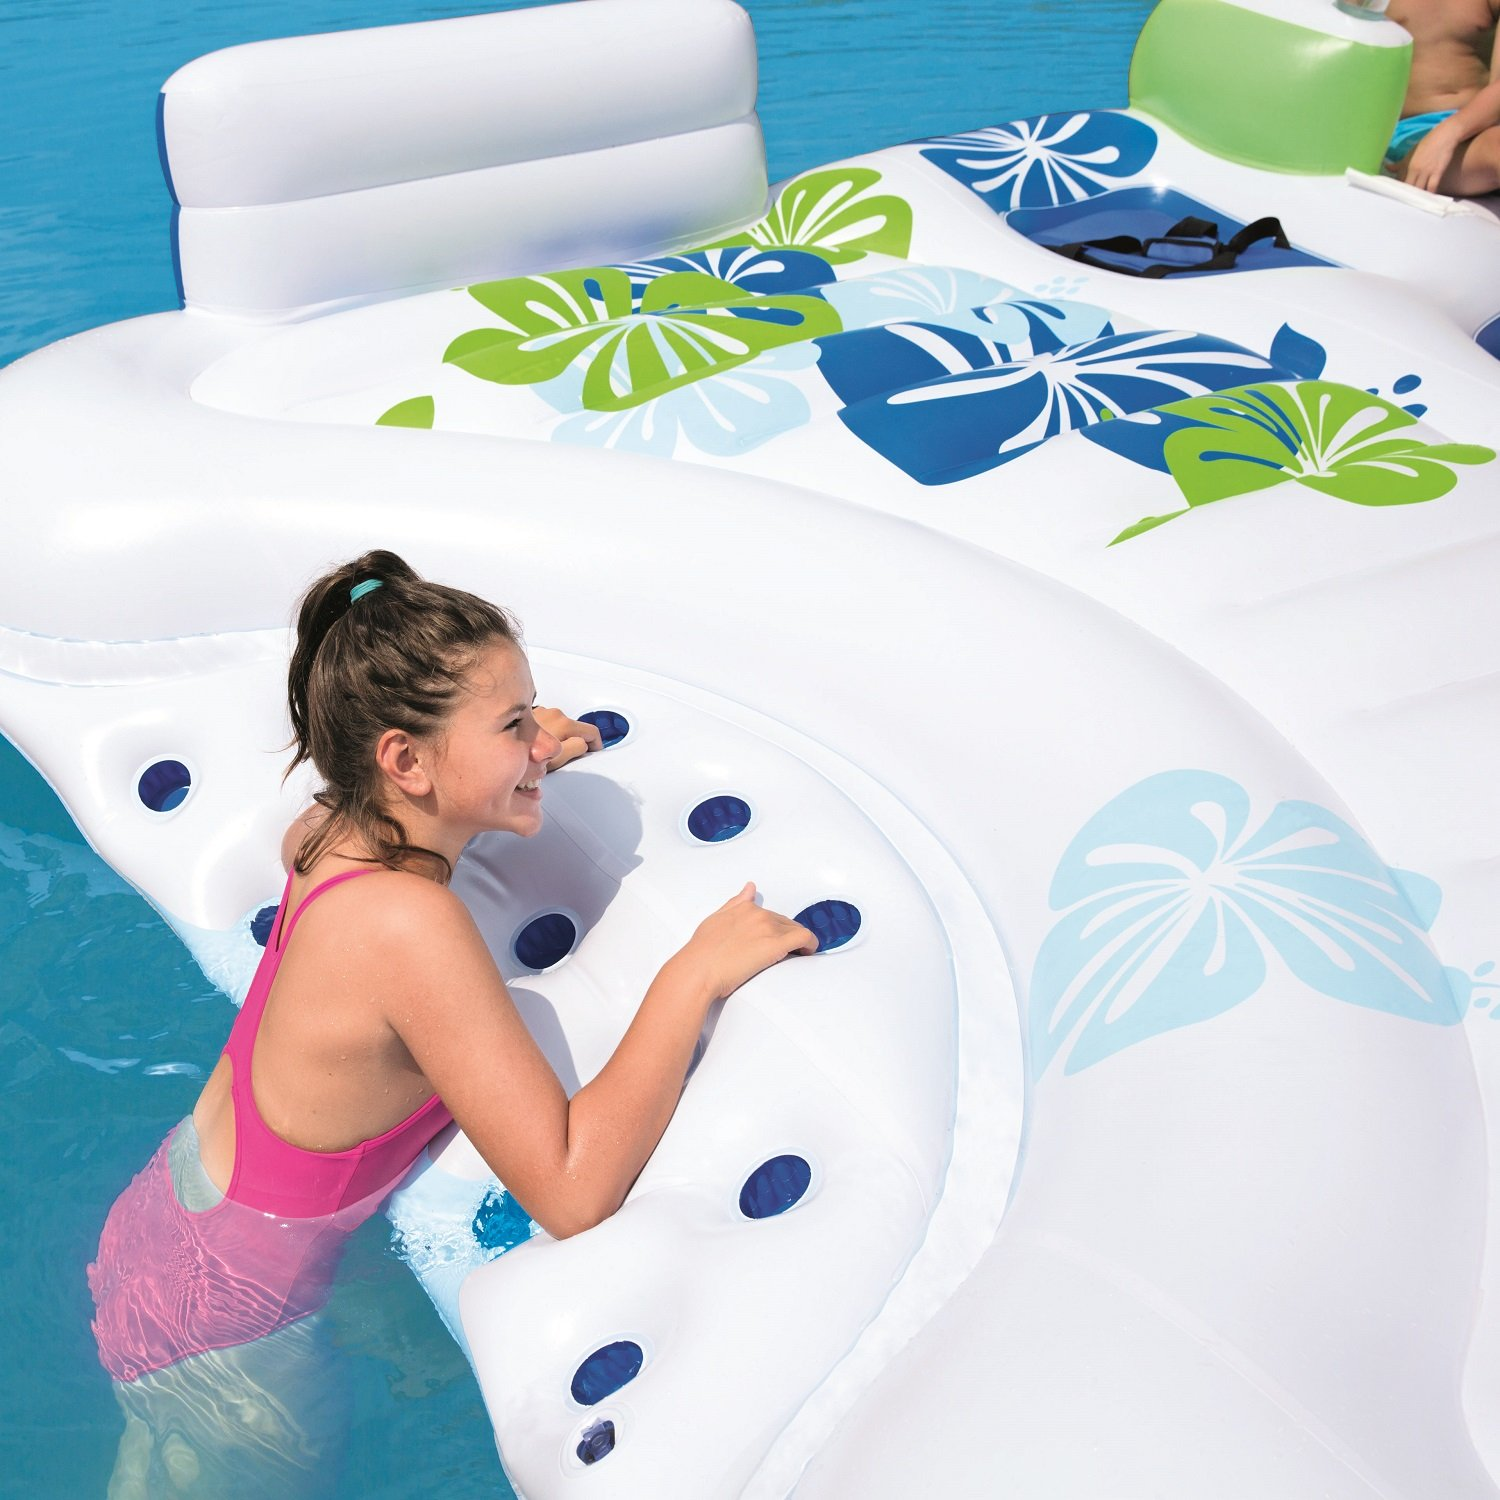 Bestway Coolerz X5 Seven Person Floating Canopy Island Seat - Amazon com coolerz x5 canopy island inflatable floating river raft toys games